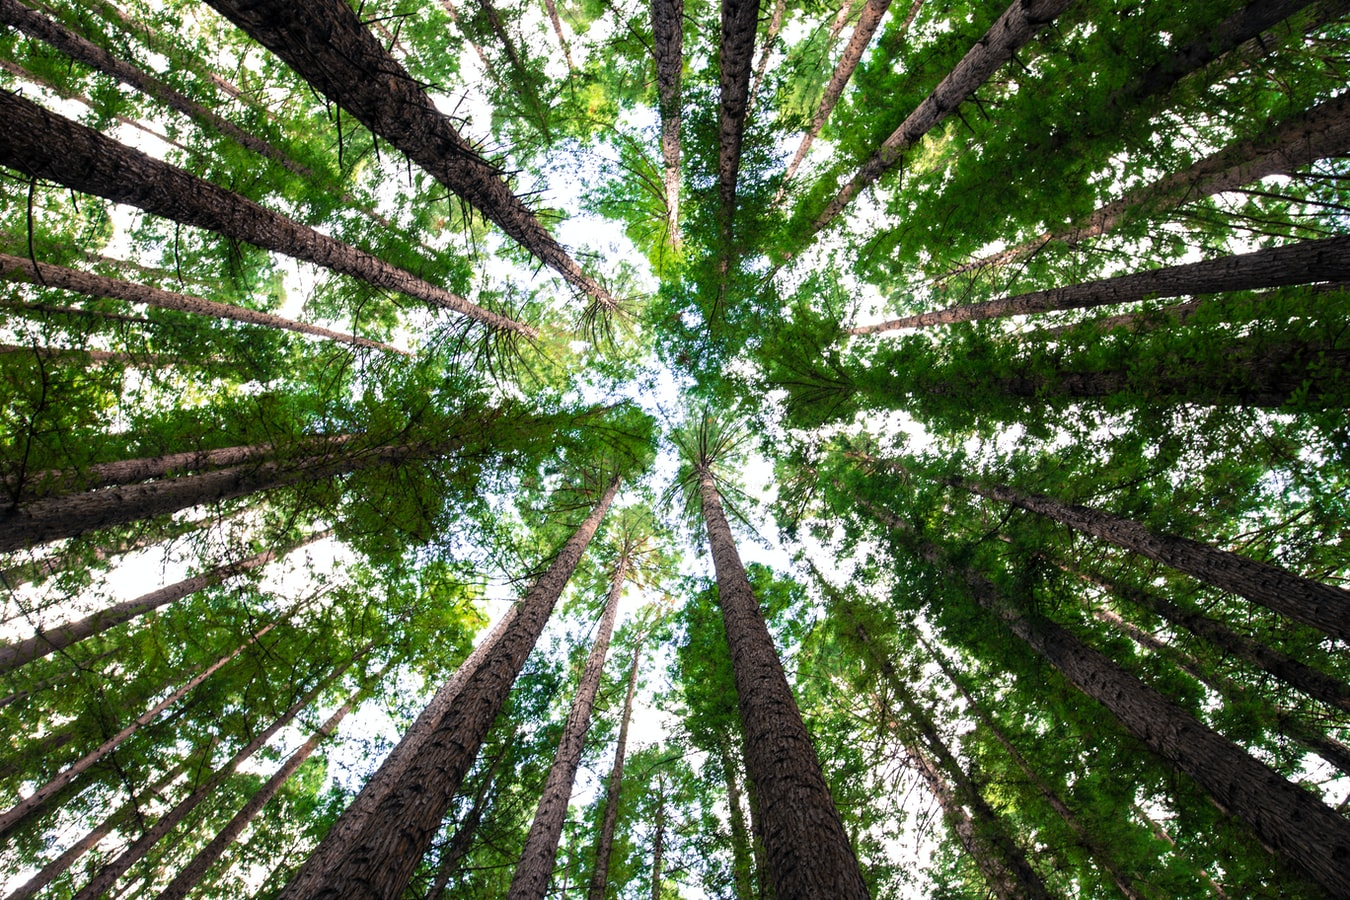 Looking up from the ground at trees in a forest